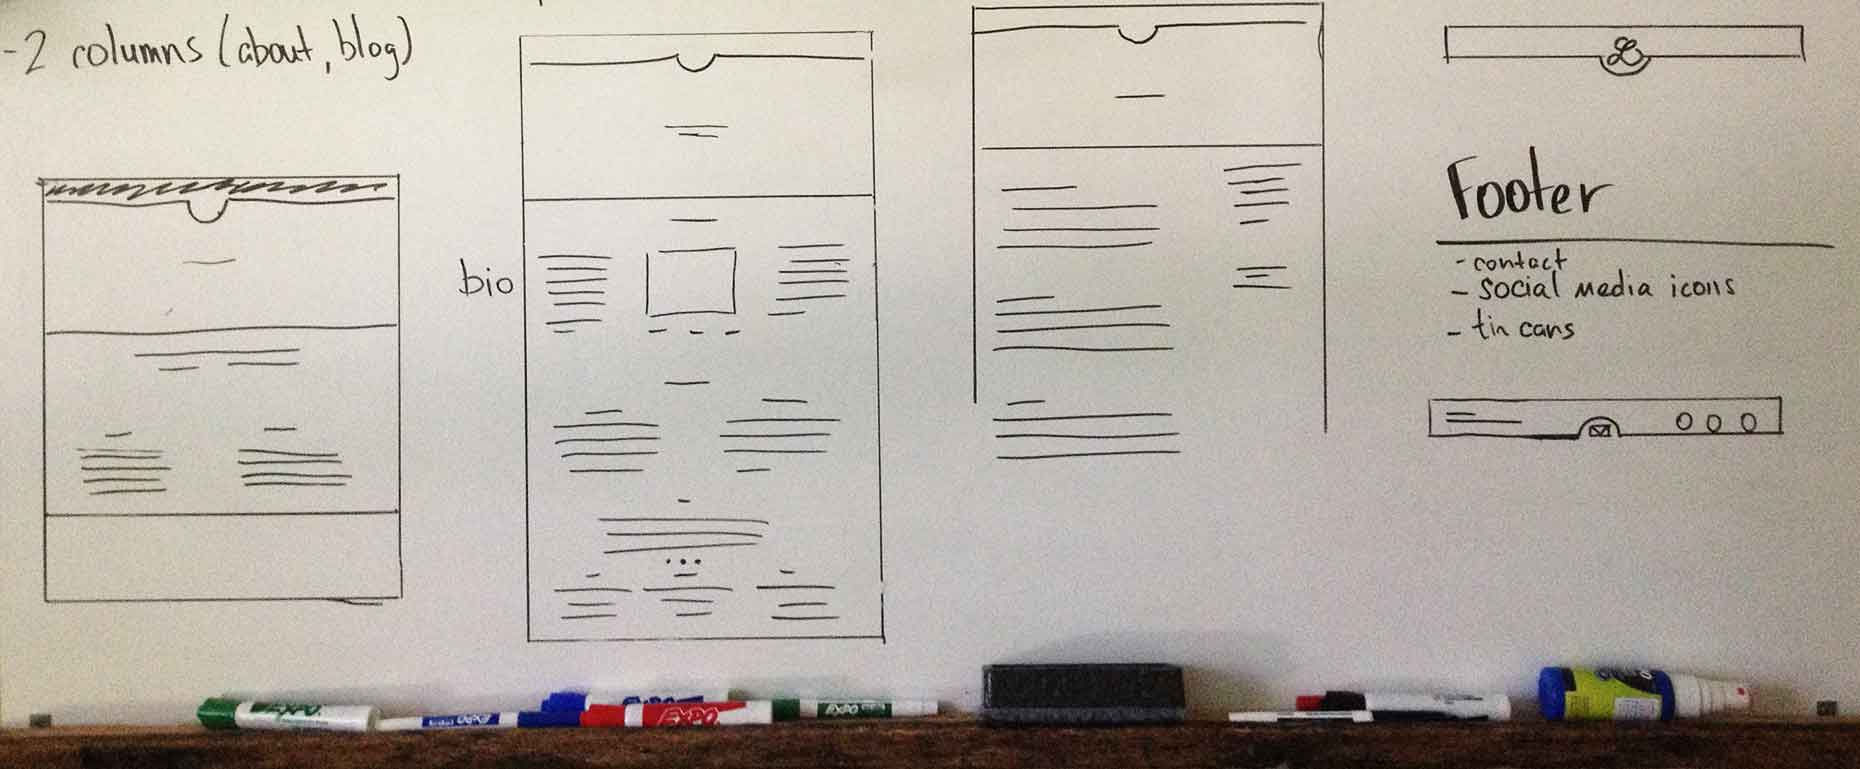 whiteboard-site-sketches